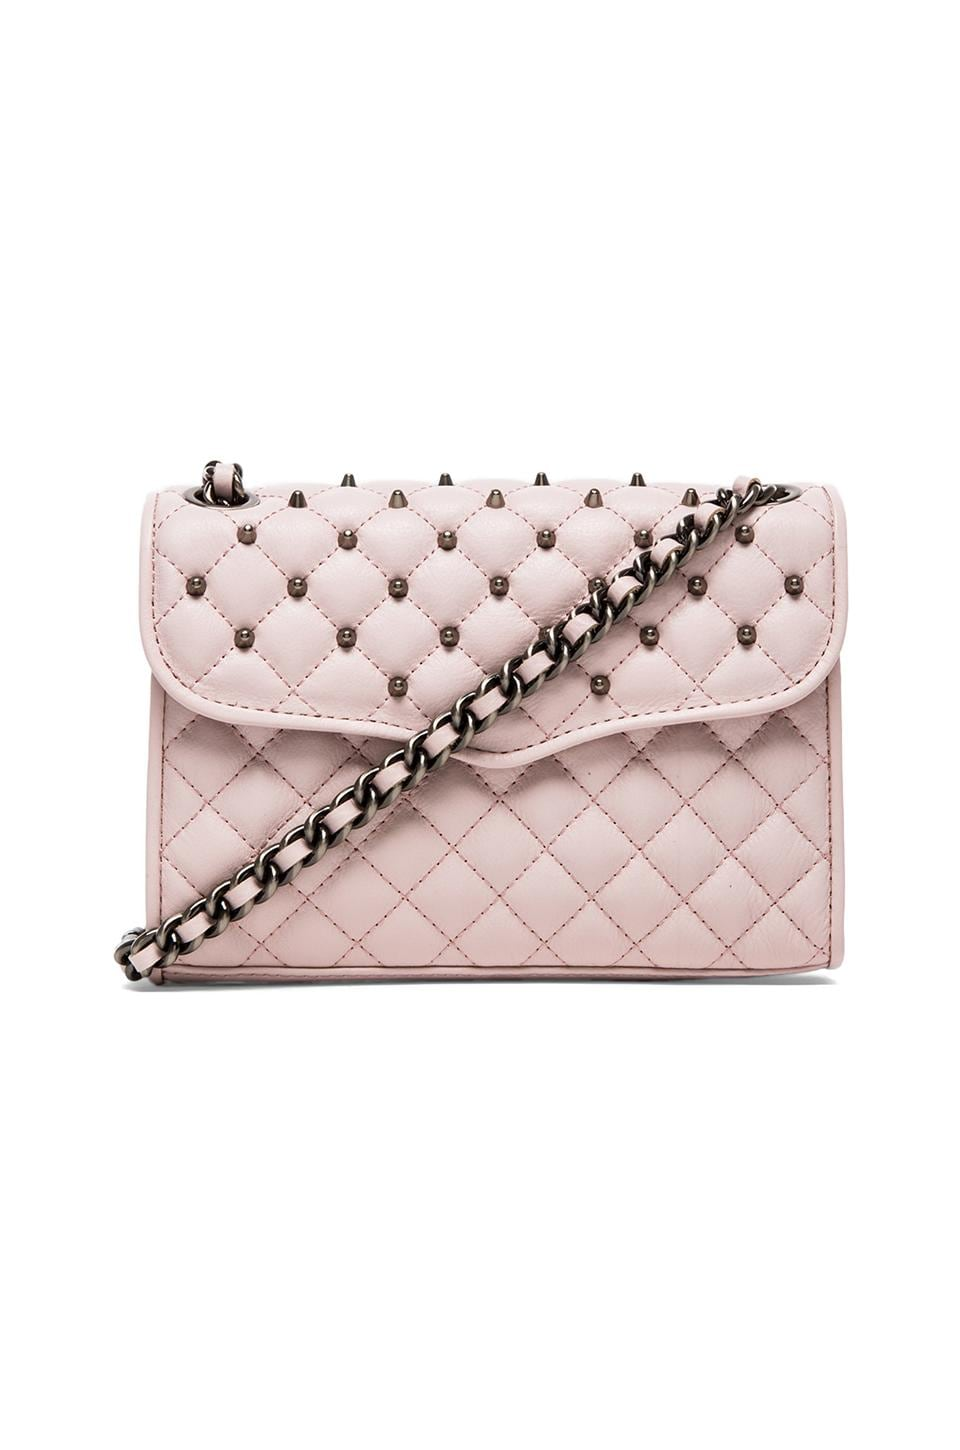 Rebecca Minkoff Quilted Mini Affair with Studs in Pale Pink